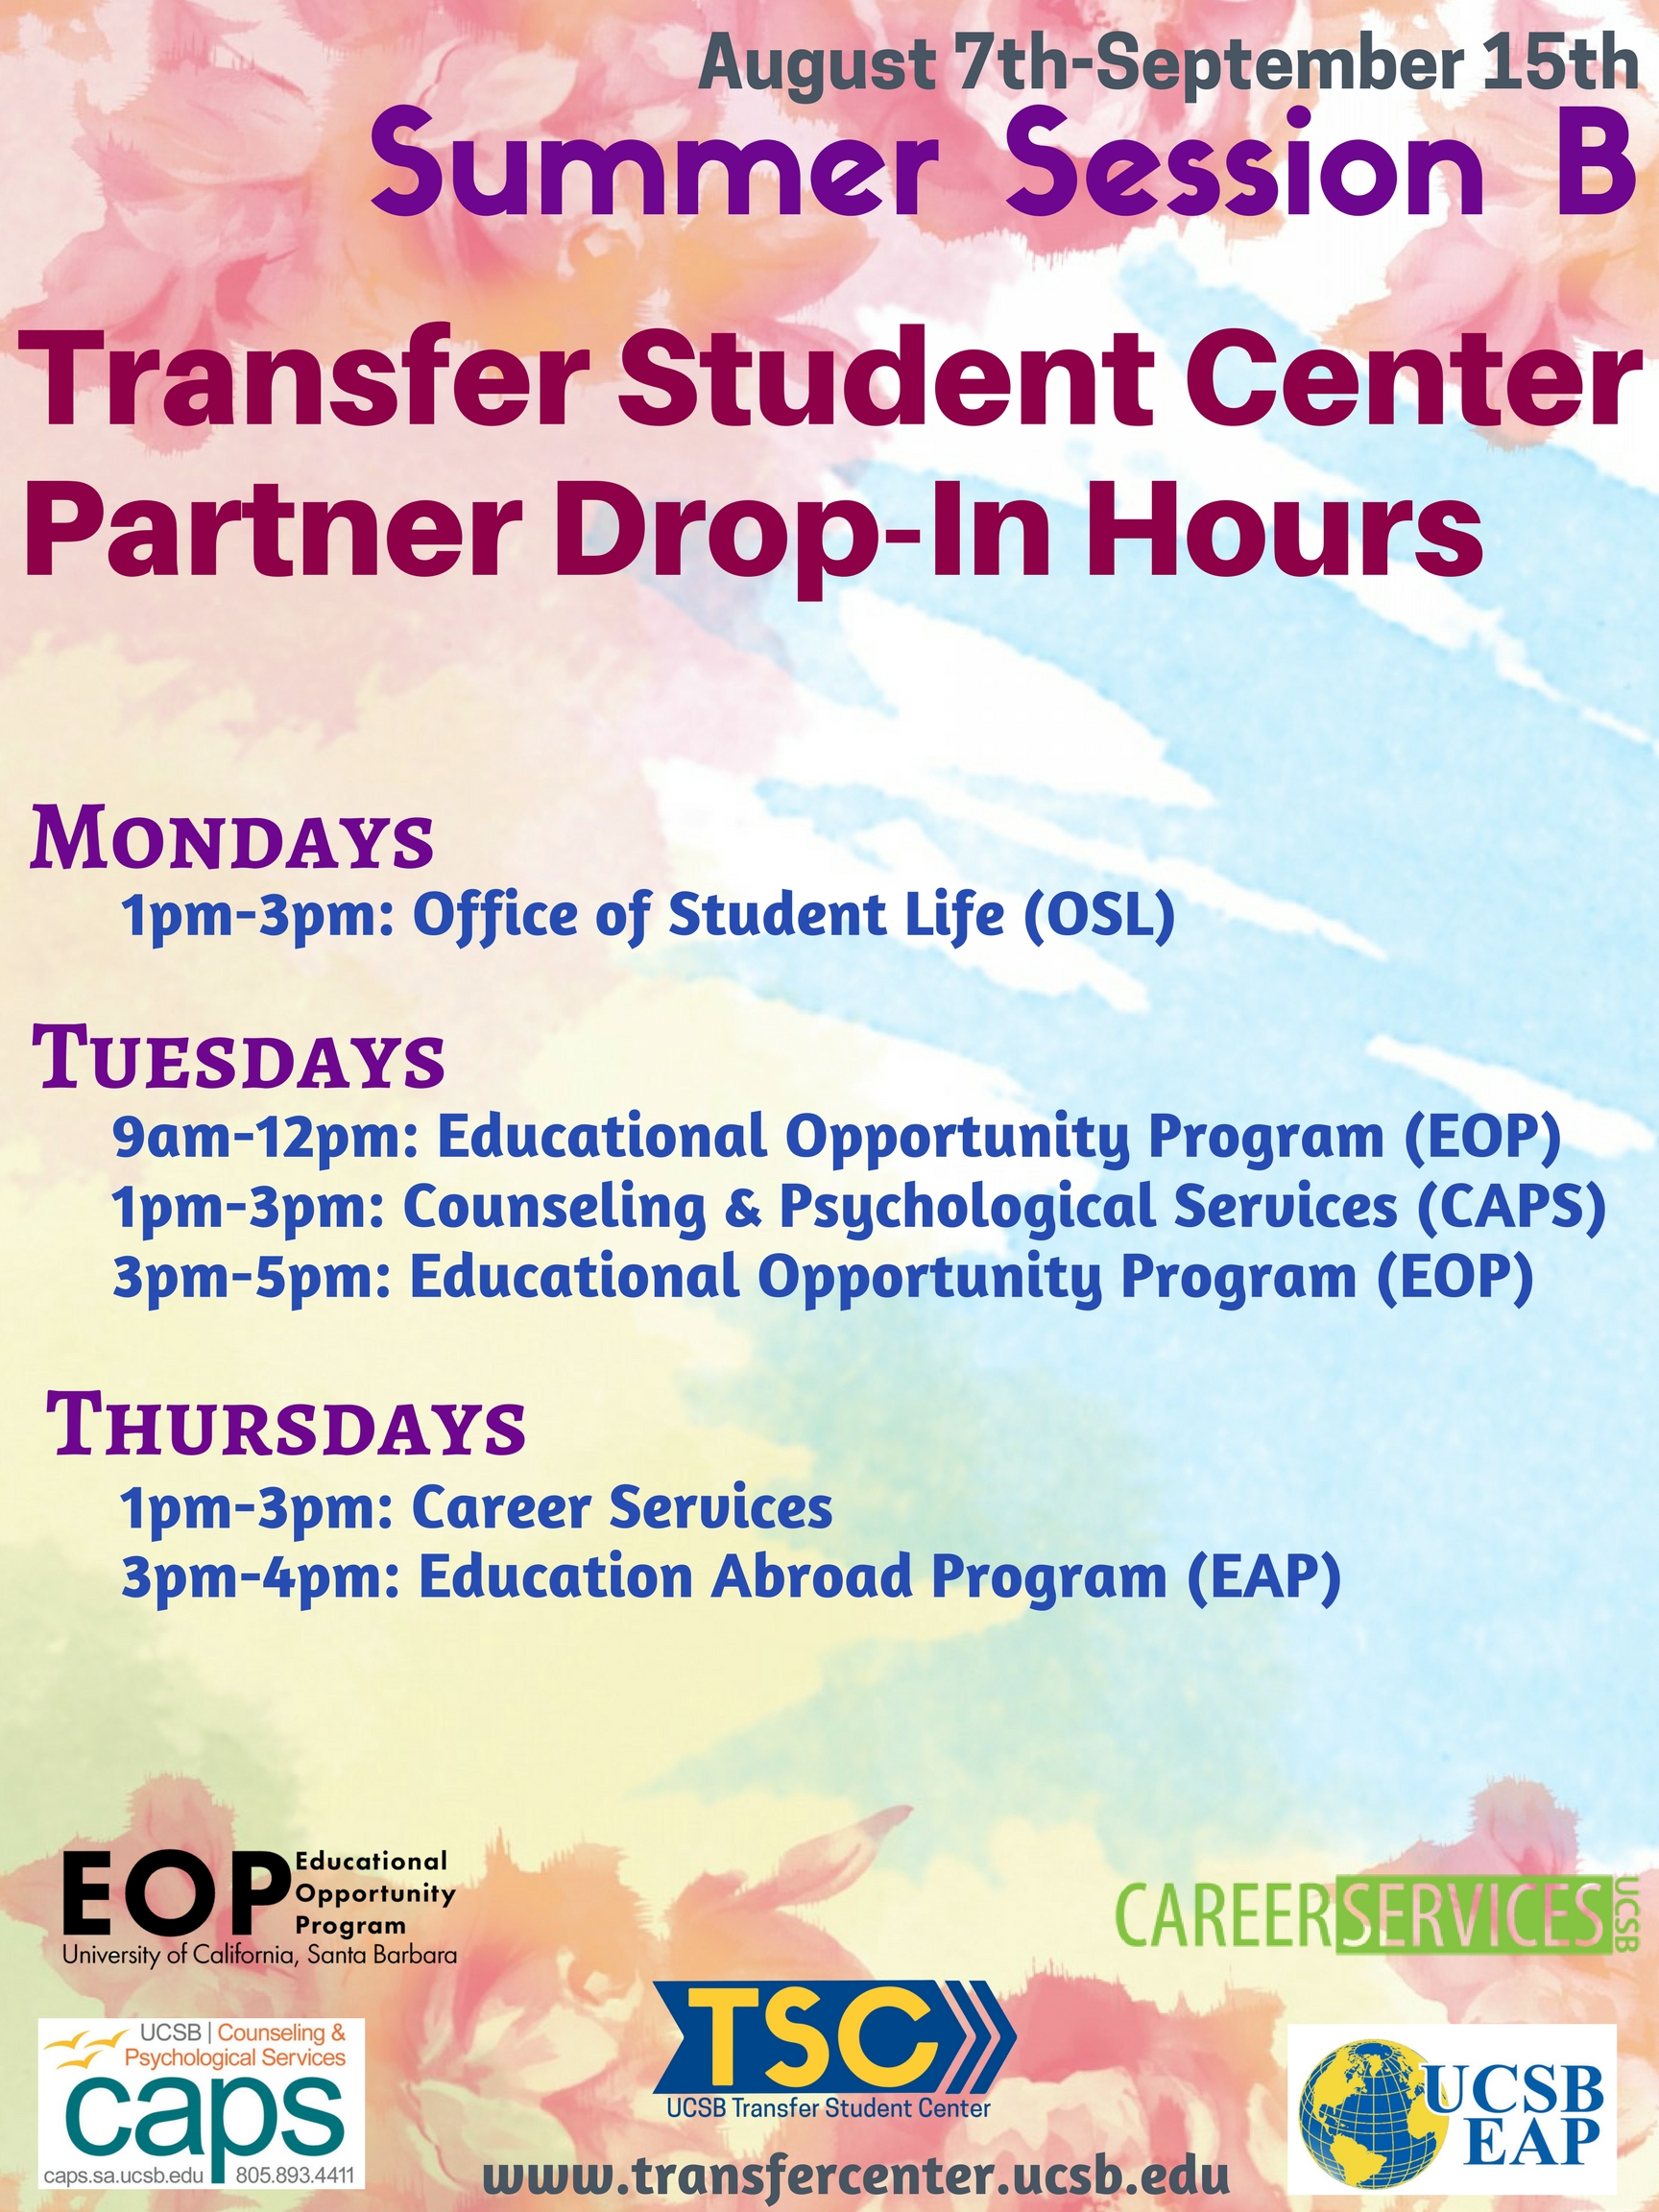 Summer Session A Drop-In Hours